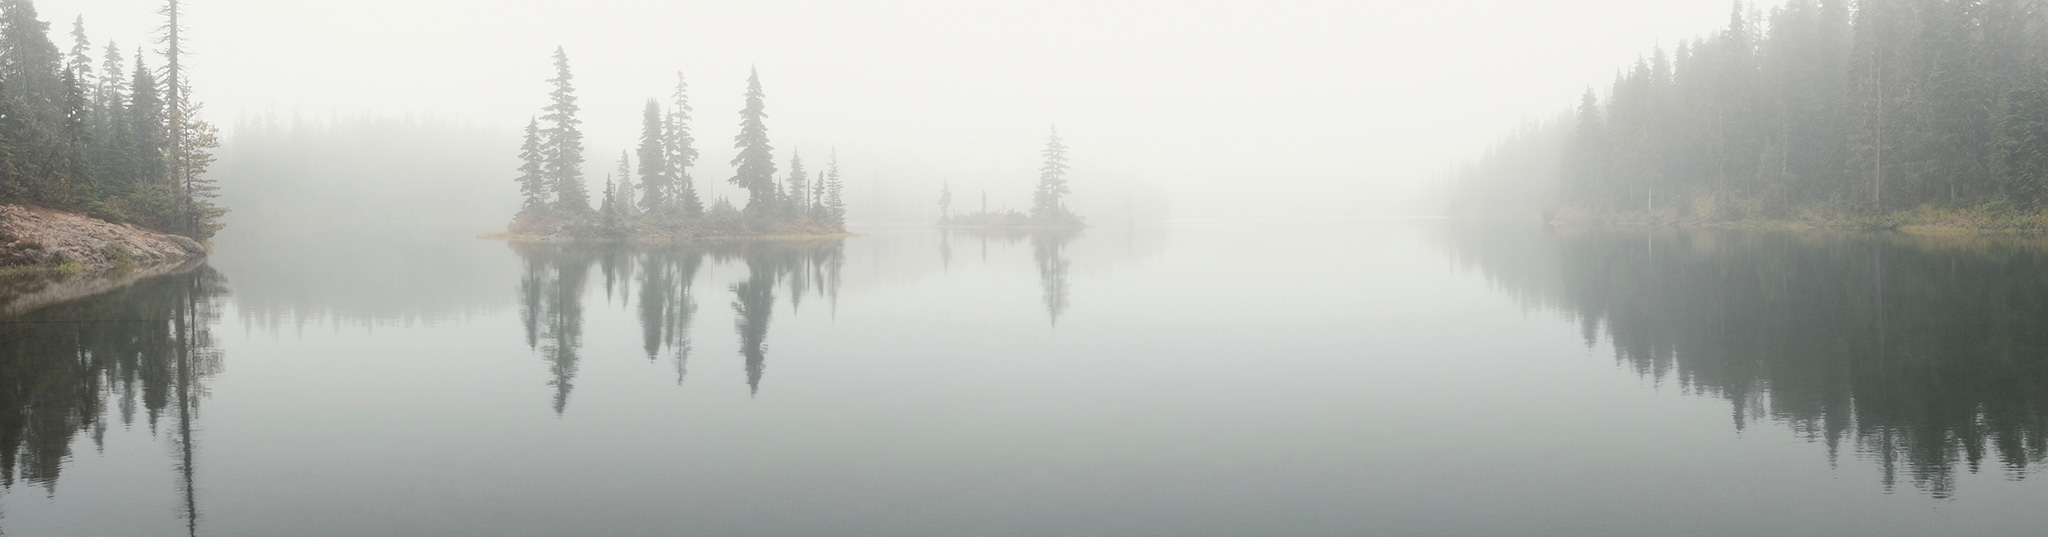 Panoramic photo of a foggy lake with an island covered in evergreen trees.